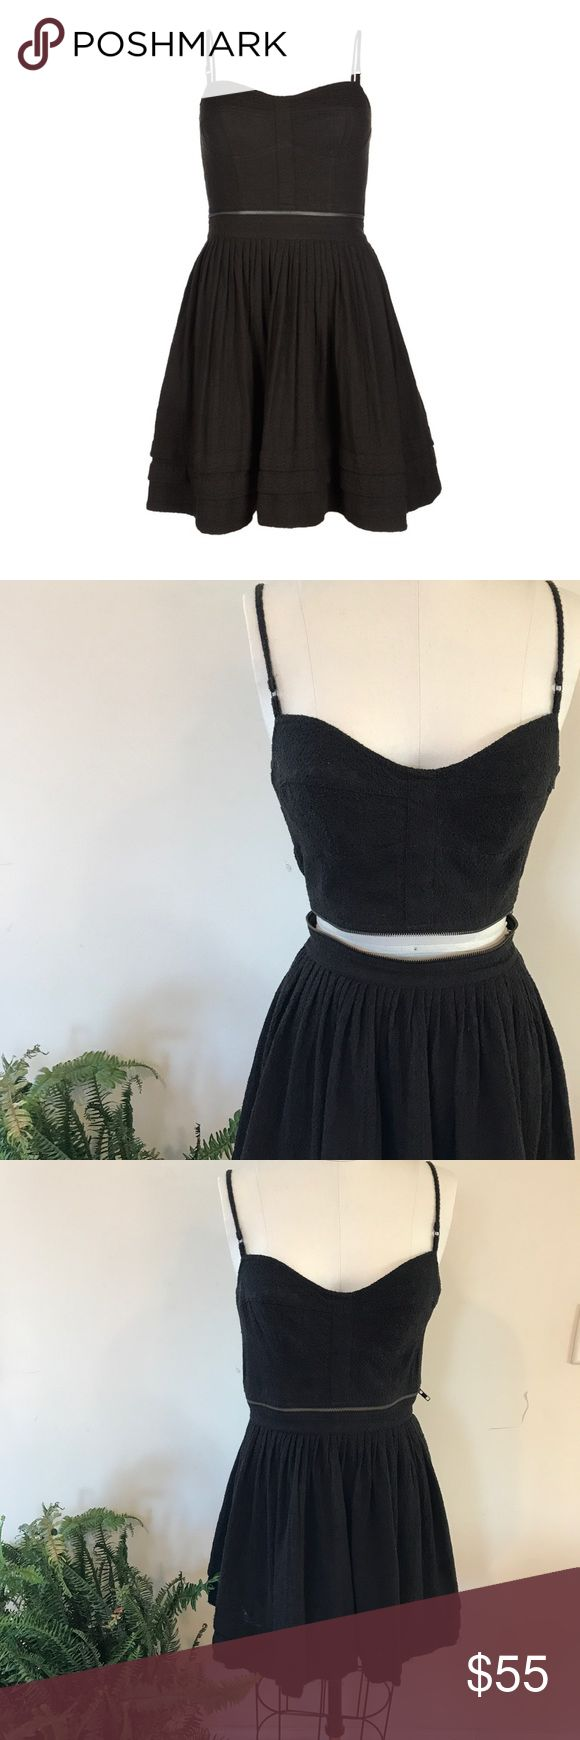 Allsaints black Anglais Prom Dress Can be worn as a dress or a two piece set. Bra top unzips from skirt. Adjustable shoulder straps. Elastic across back for added comfort. UK 12/ US 8 All Saints Dresses Mini